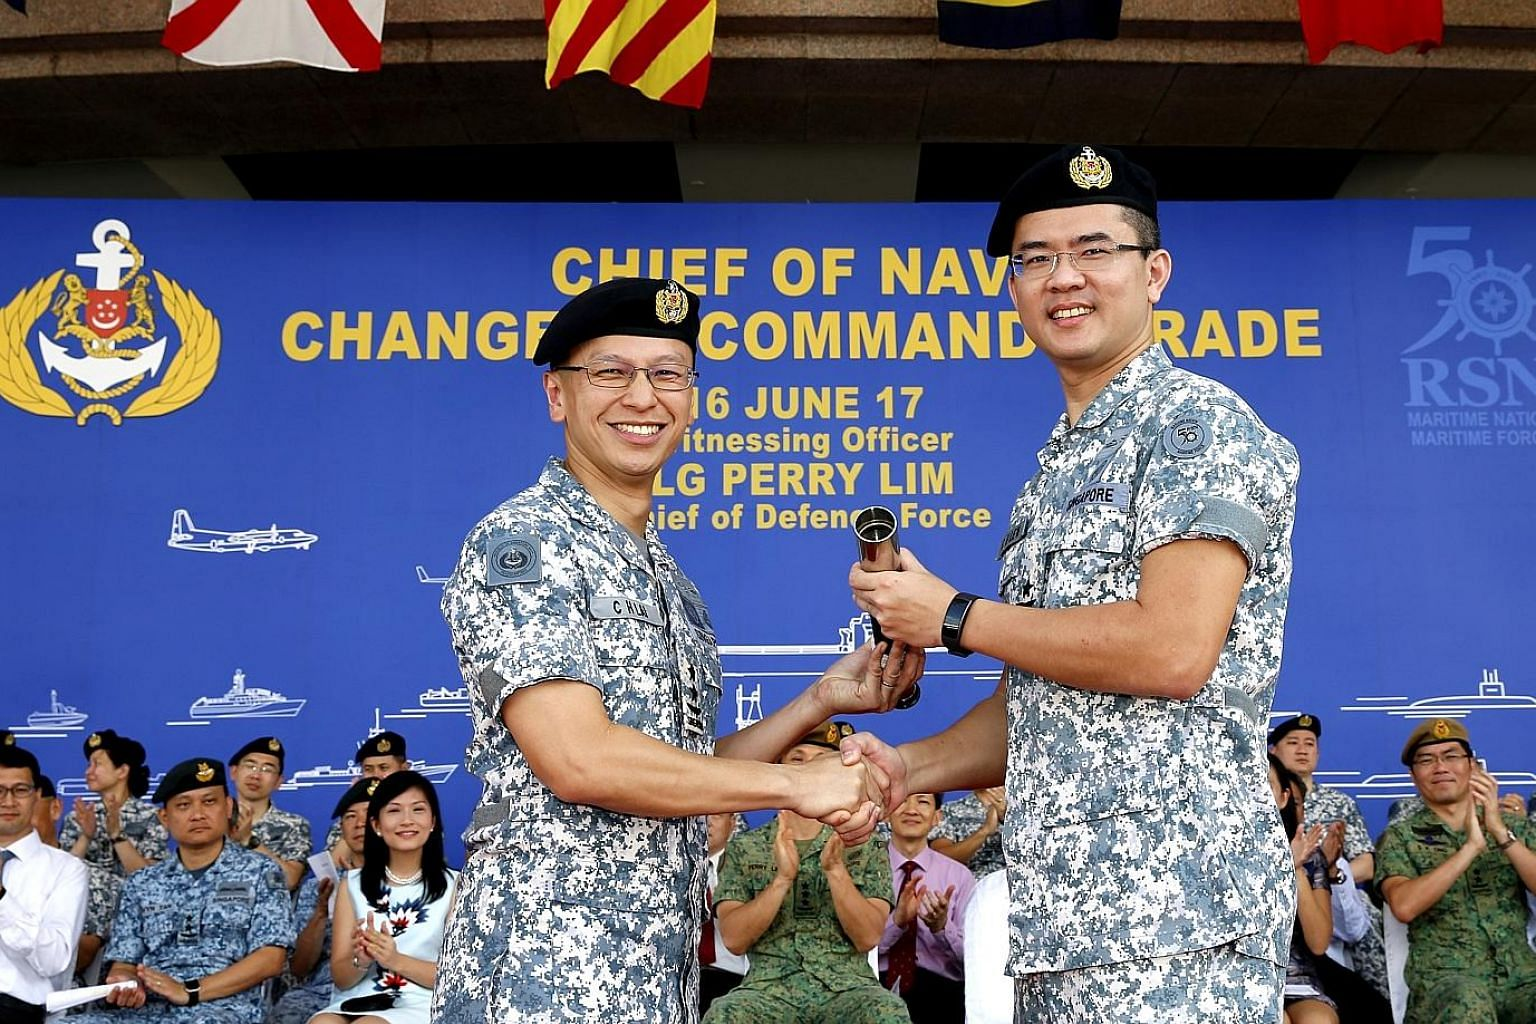 The command of the Republic of Singapore Navy (RSN) was handed over to Rear-Admiral (RADM) Lew Chuen Hong (right), by outgoing navy chief Lai Chung Han at RSS Singapura - Changi Naval Base yesterday morning. RADM Lew, 41, joined the Singapore Armed F